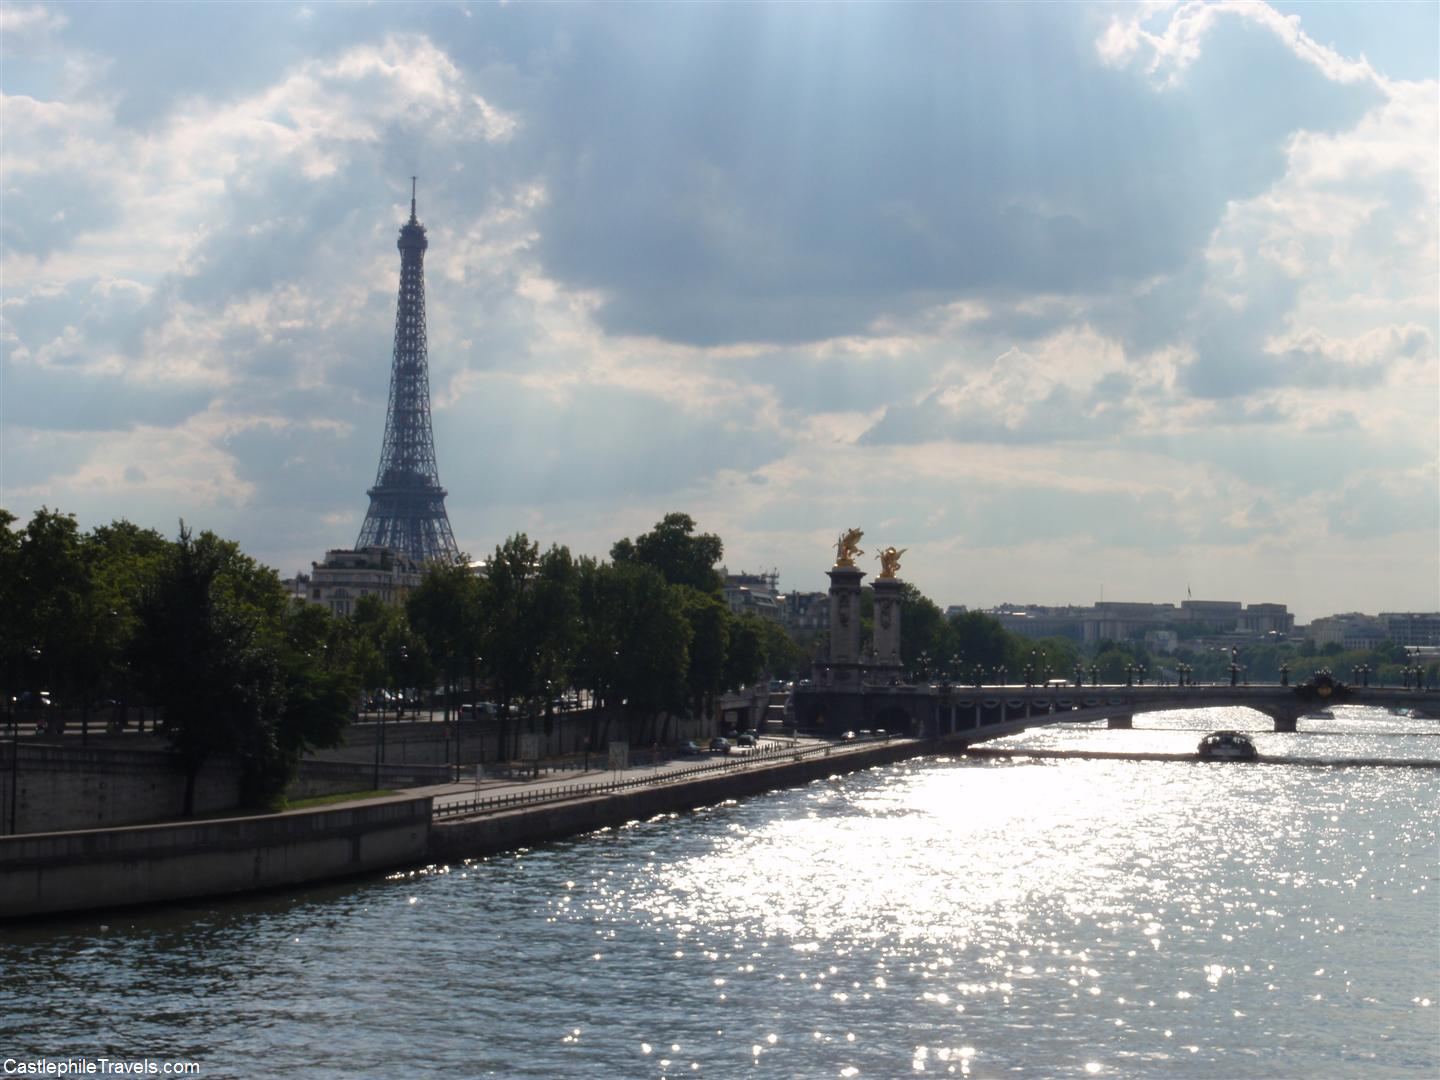 The Eiffel Tower from the Pont de la Concorde